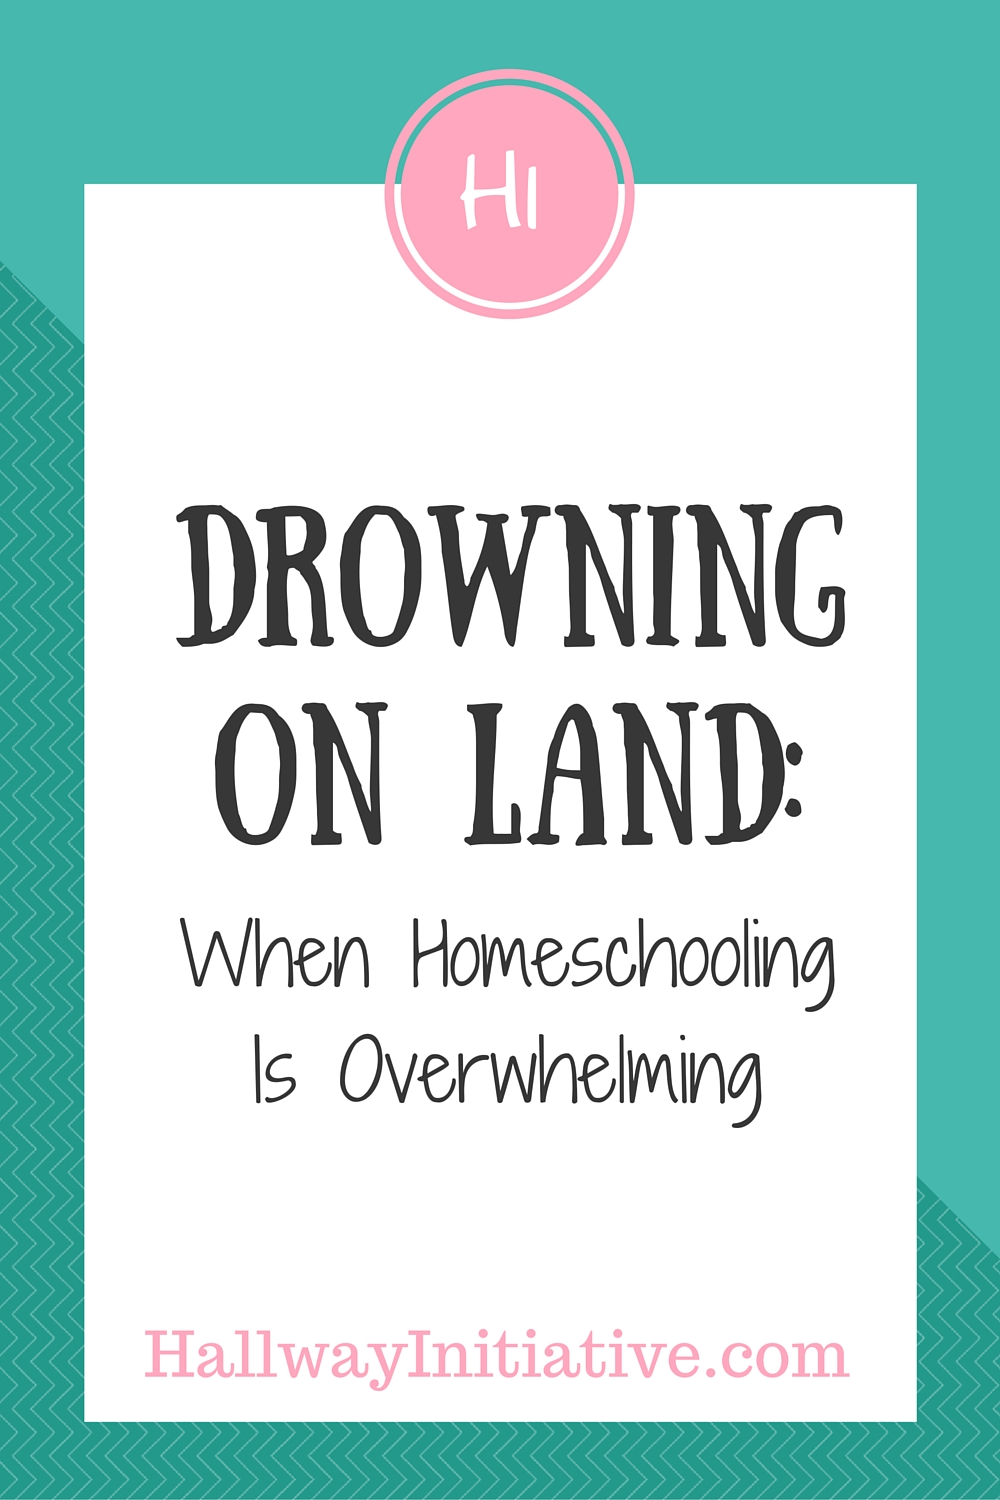 Drowning on land: when homeschooling is overwhelming